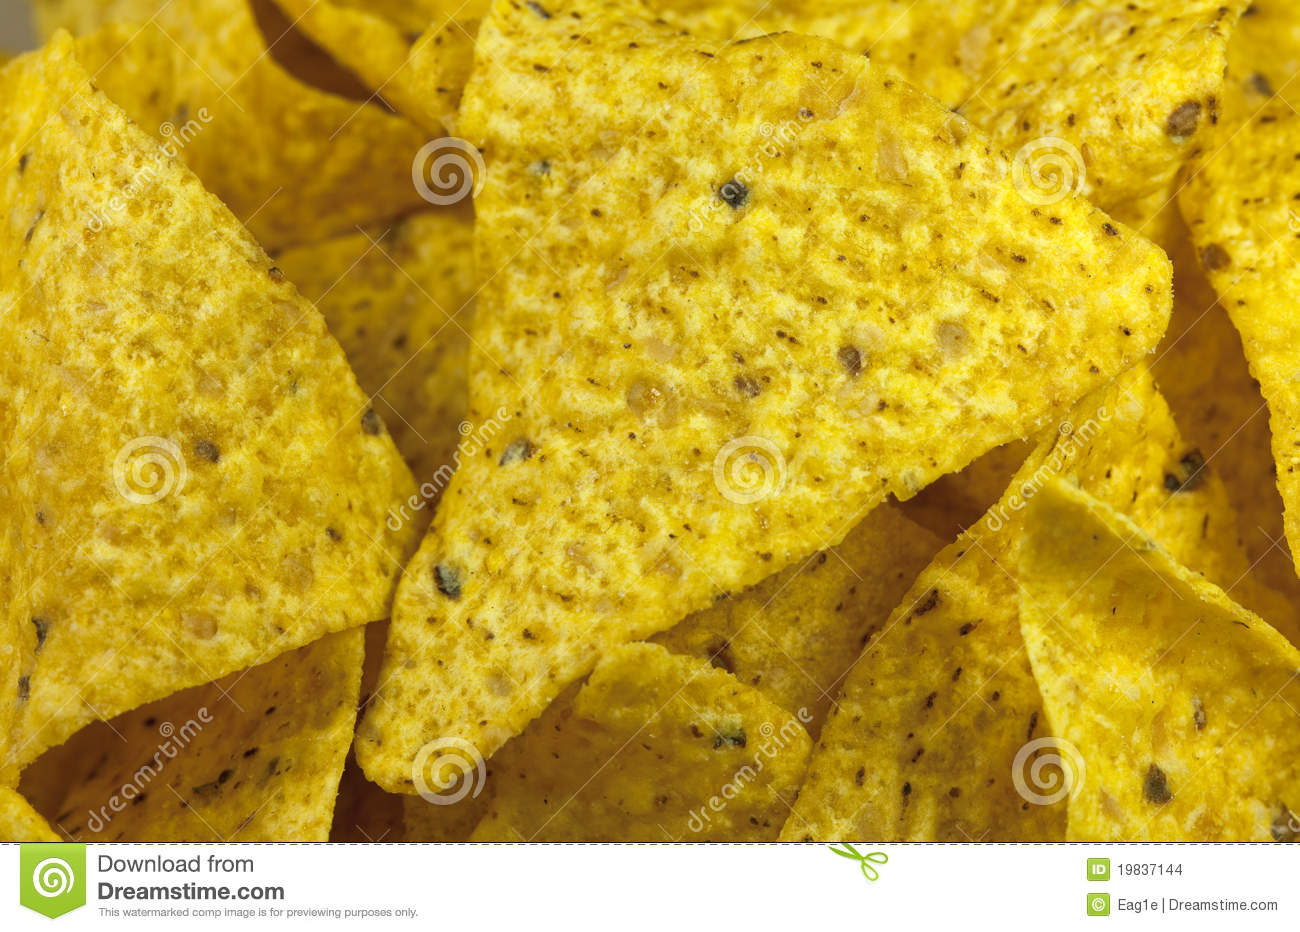 More similar stock images of ` Corn Chips `